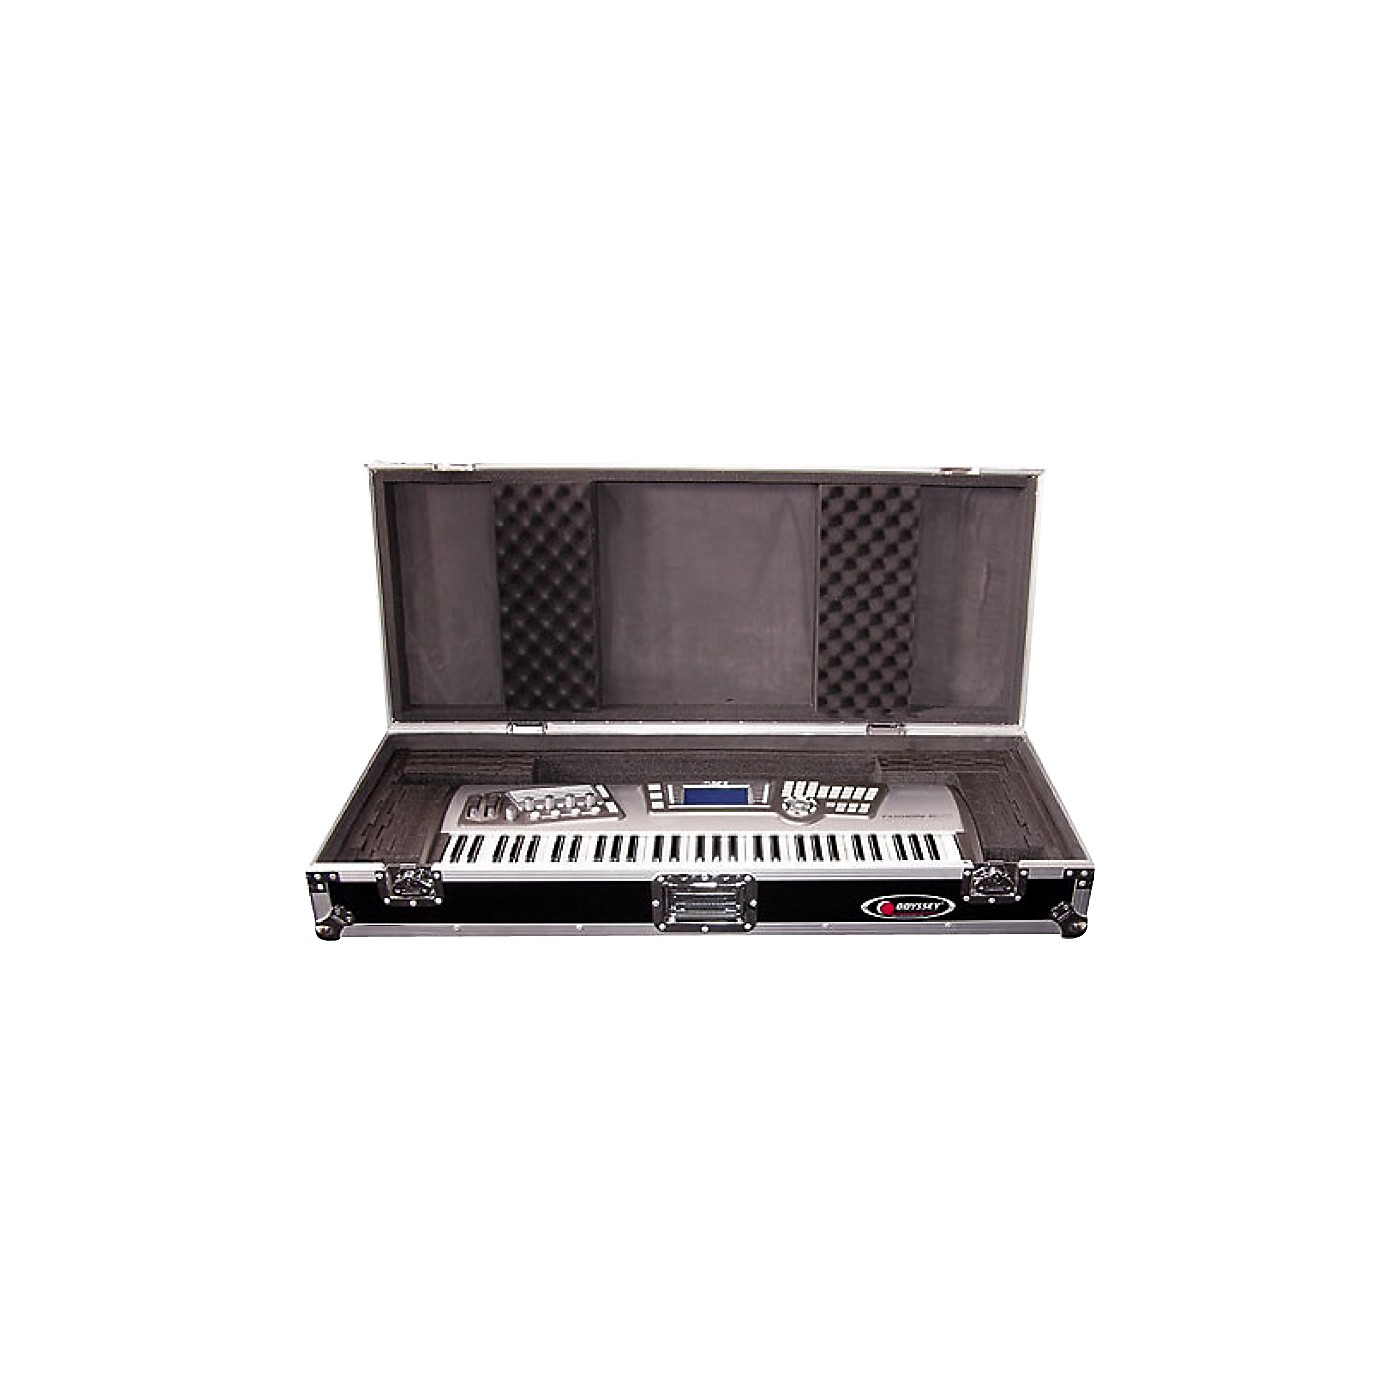 Odyssey Flight Zone: Keyboard case for 61 note keyboards with wheels thumbnail